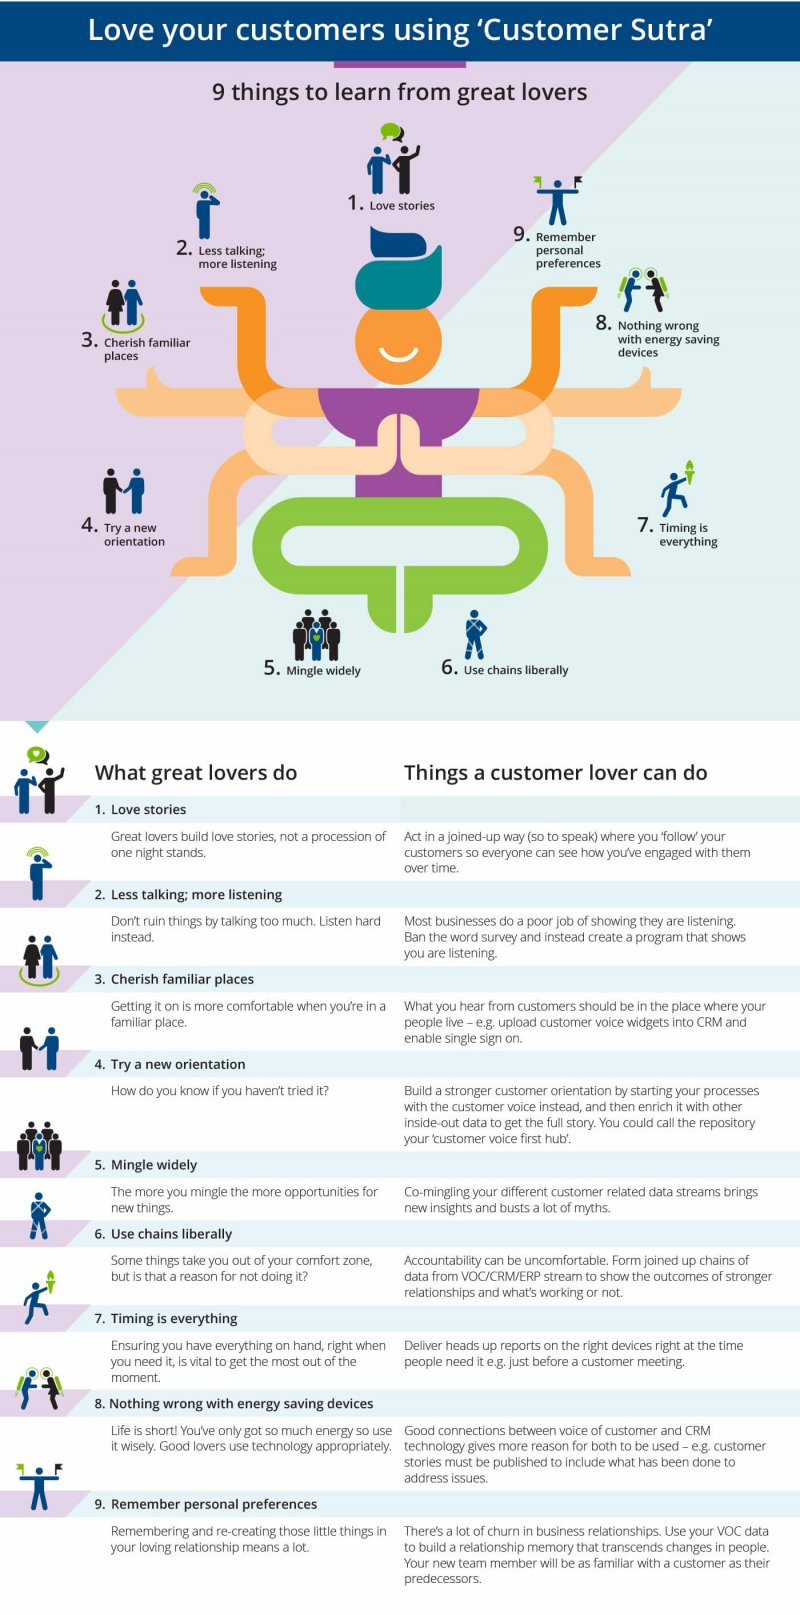 Love your customers with 'Customer Sutra'